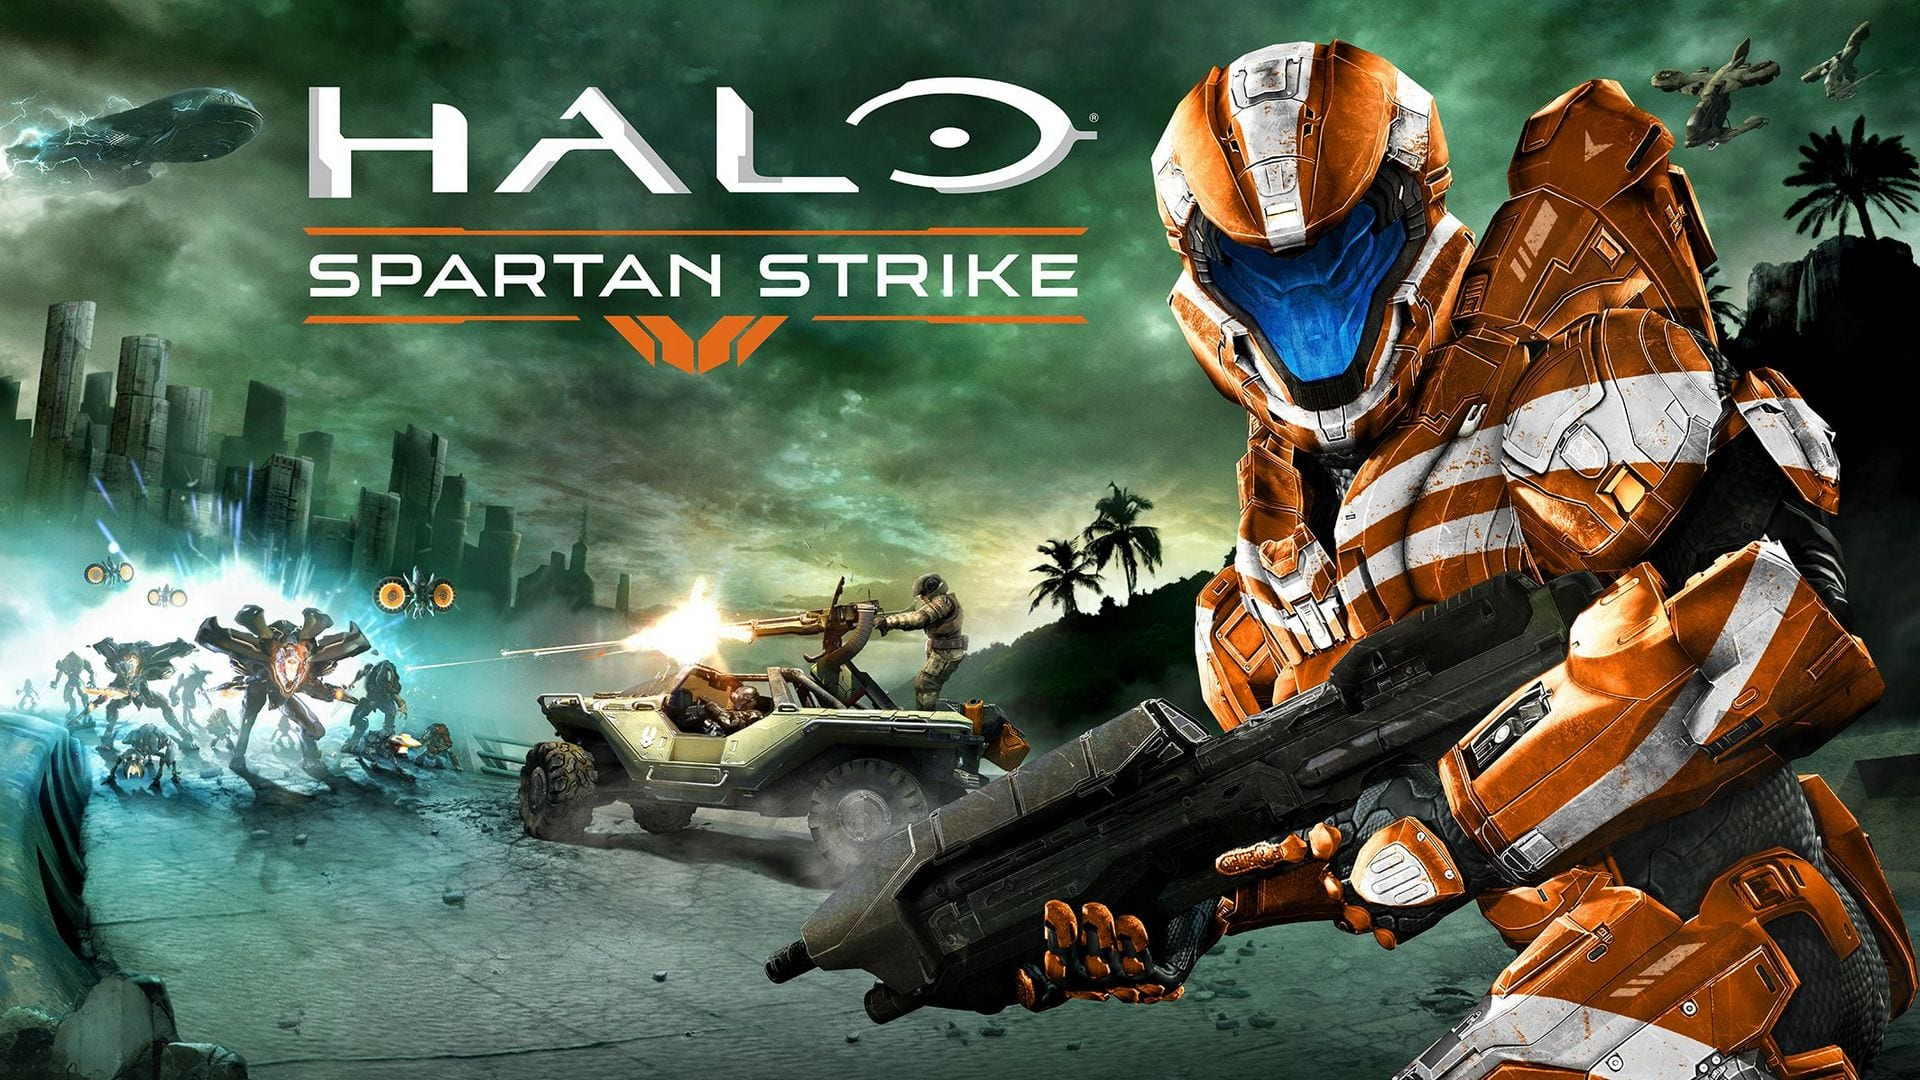 Halo Spartan Strike Cover 2